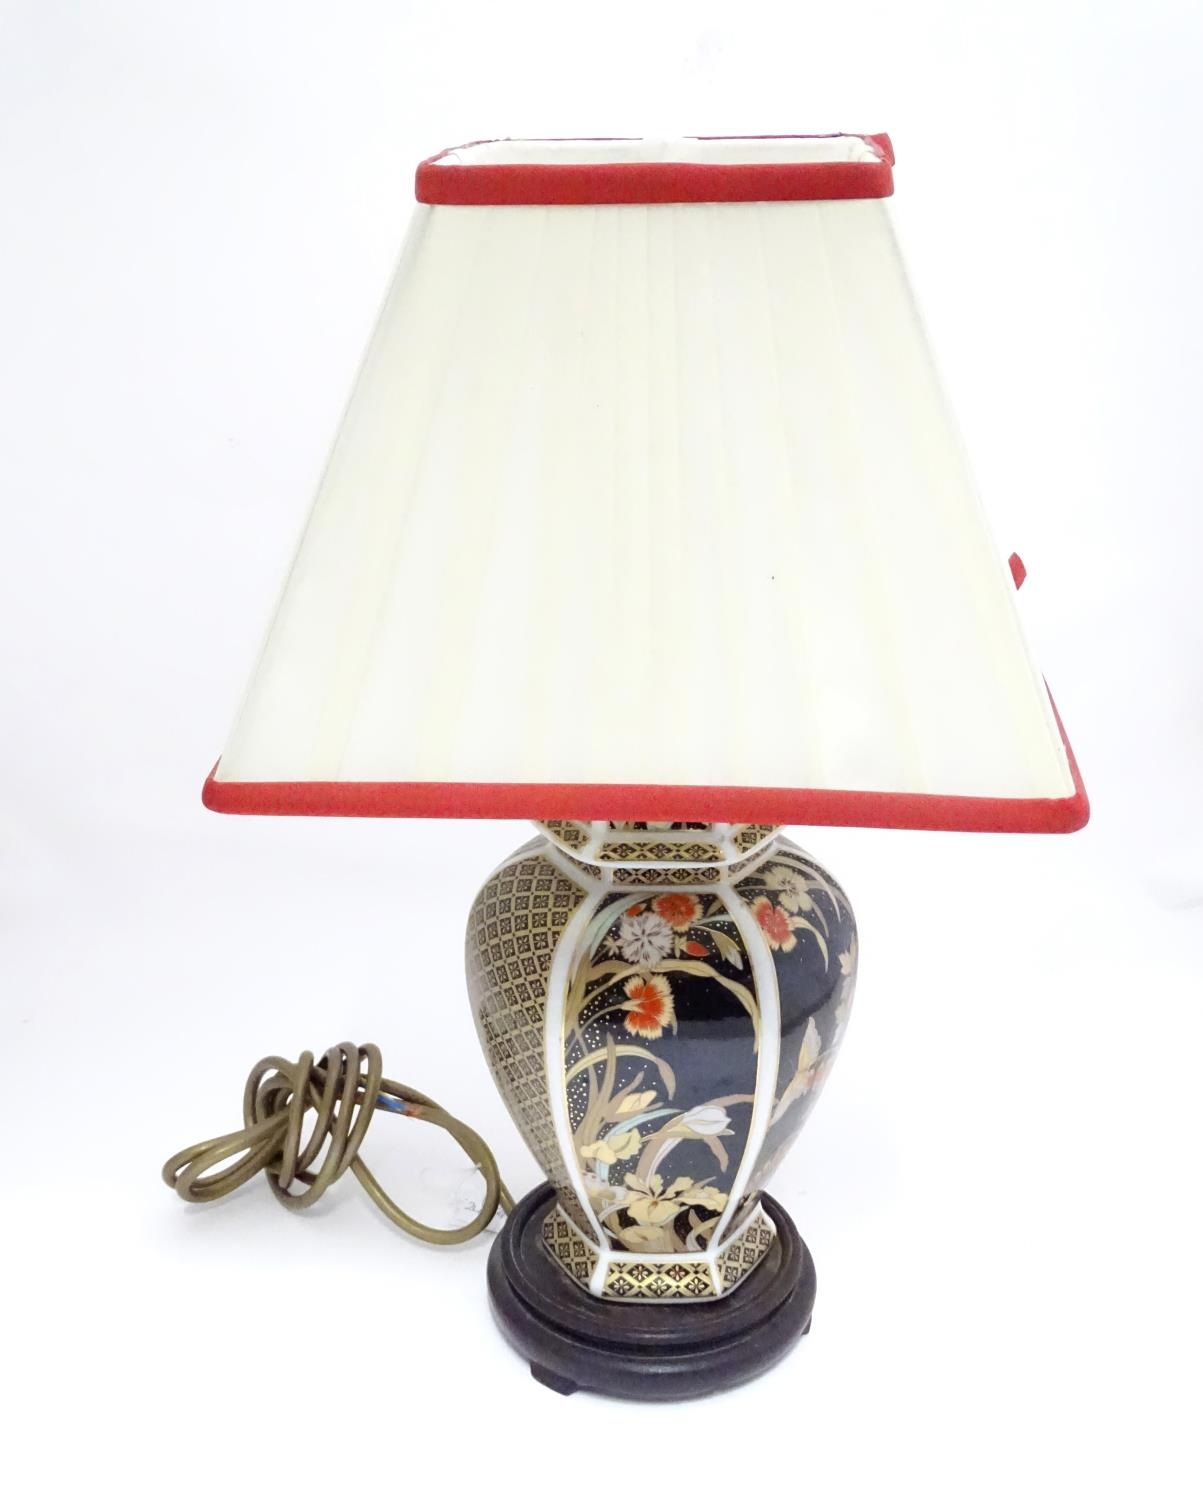 An Oriental style lamp with shade Please Note - we do not make reference to the condition of lots